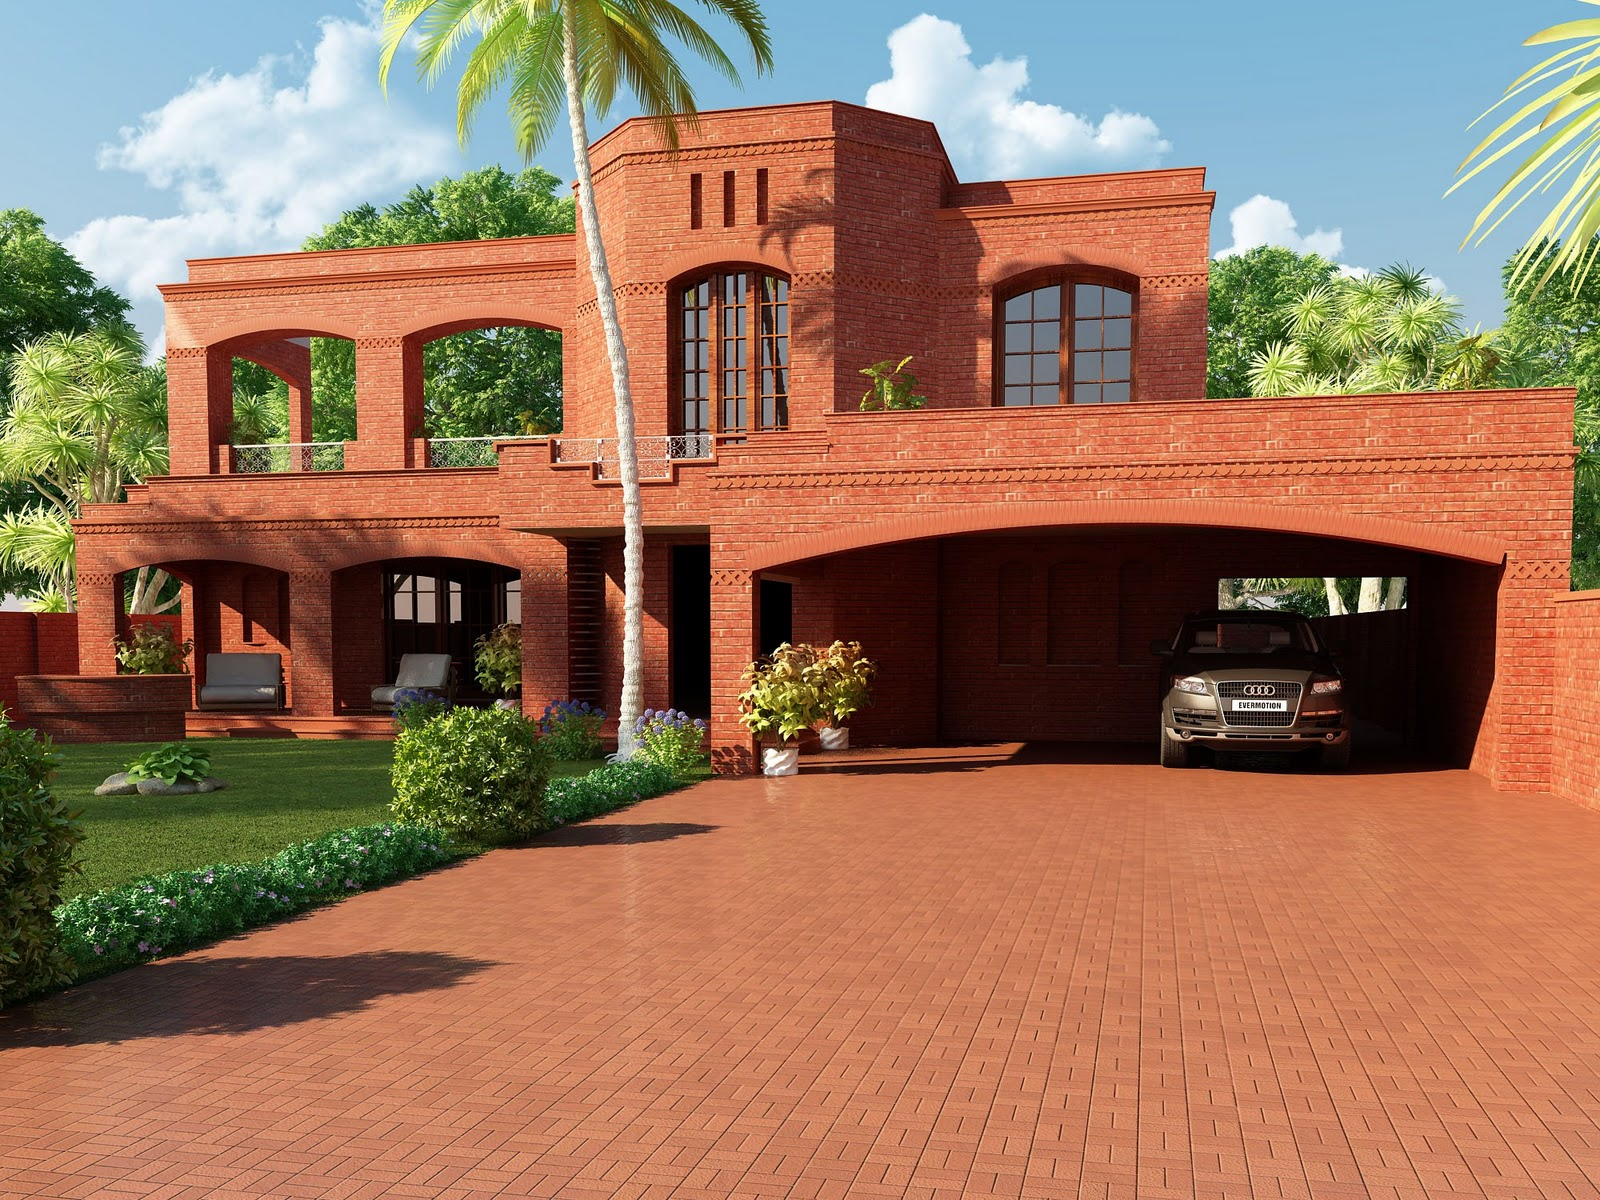 Kerala Building Construction Typical Home 3D